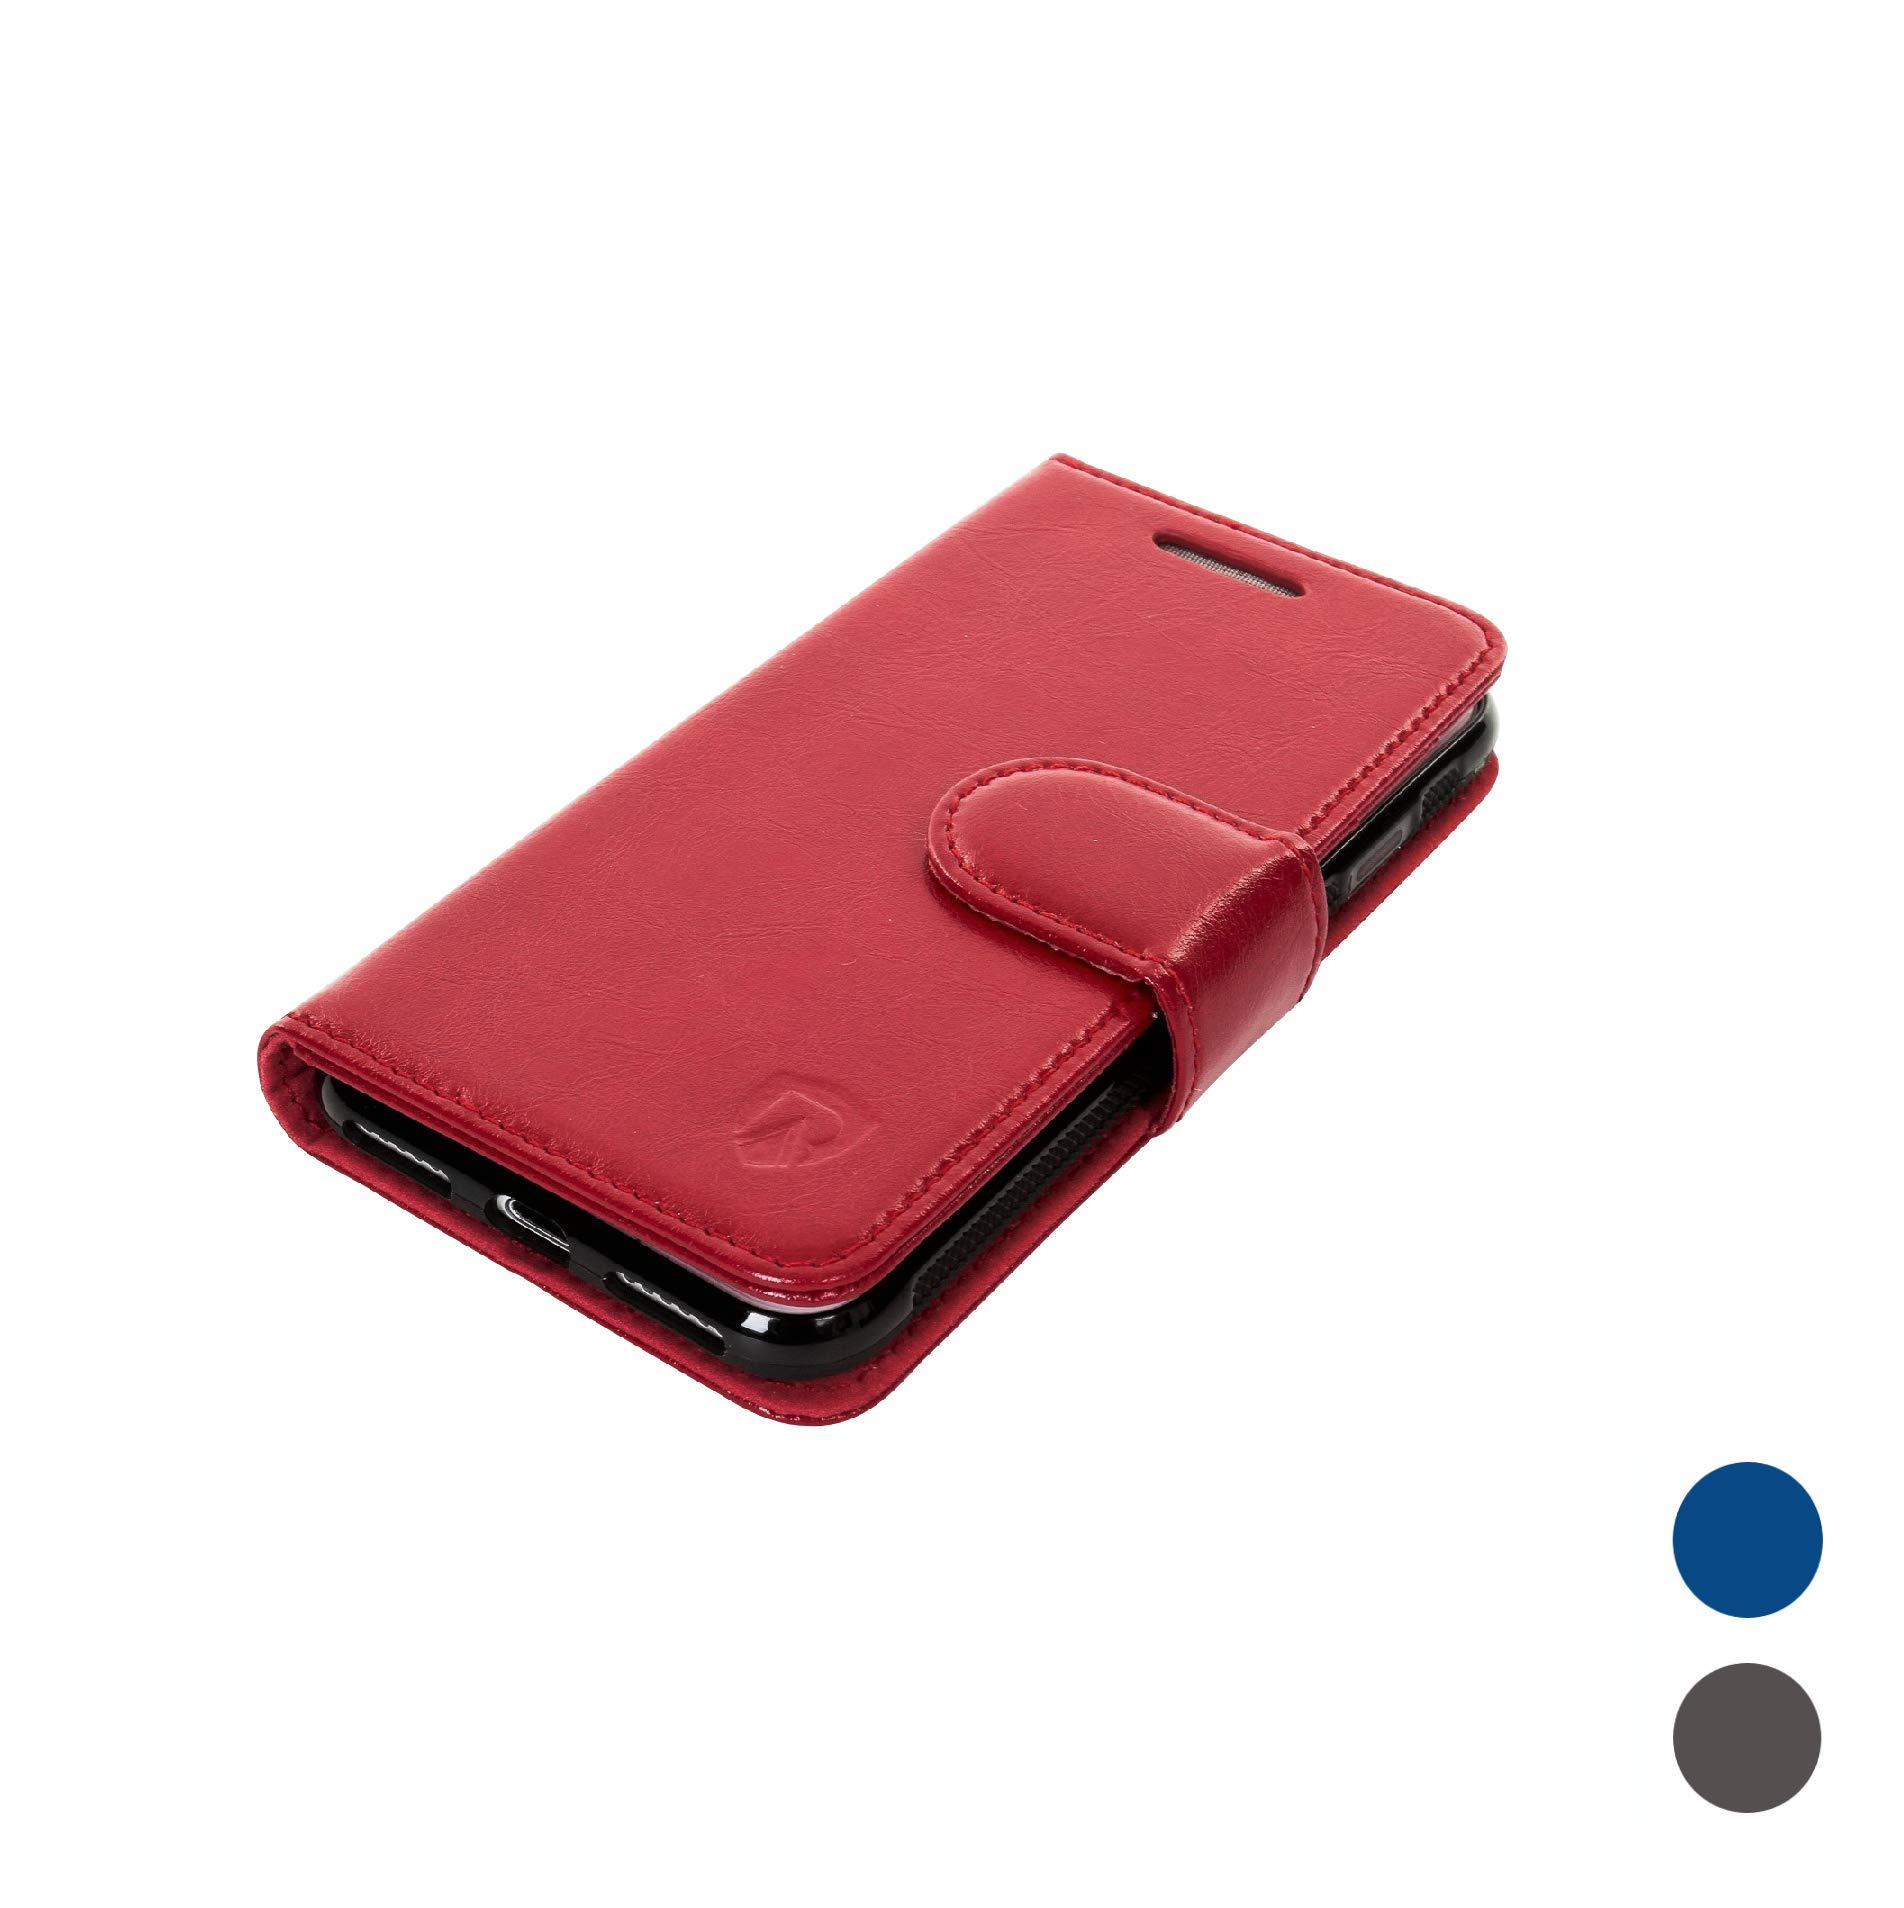 RadiArmor Anti-Radiation Case - Compatible with iPhone 7 and iPhone 8 (4.7 inch Screen) - Lab Certified EMF Protection (Red) by RadiArmor